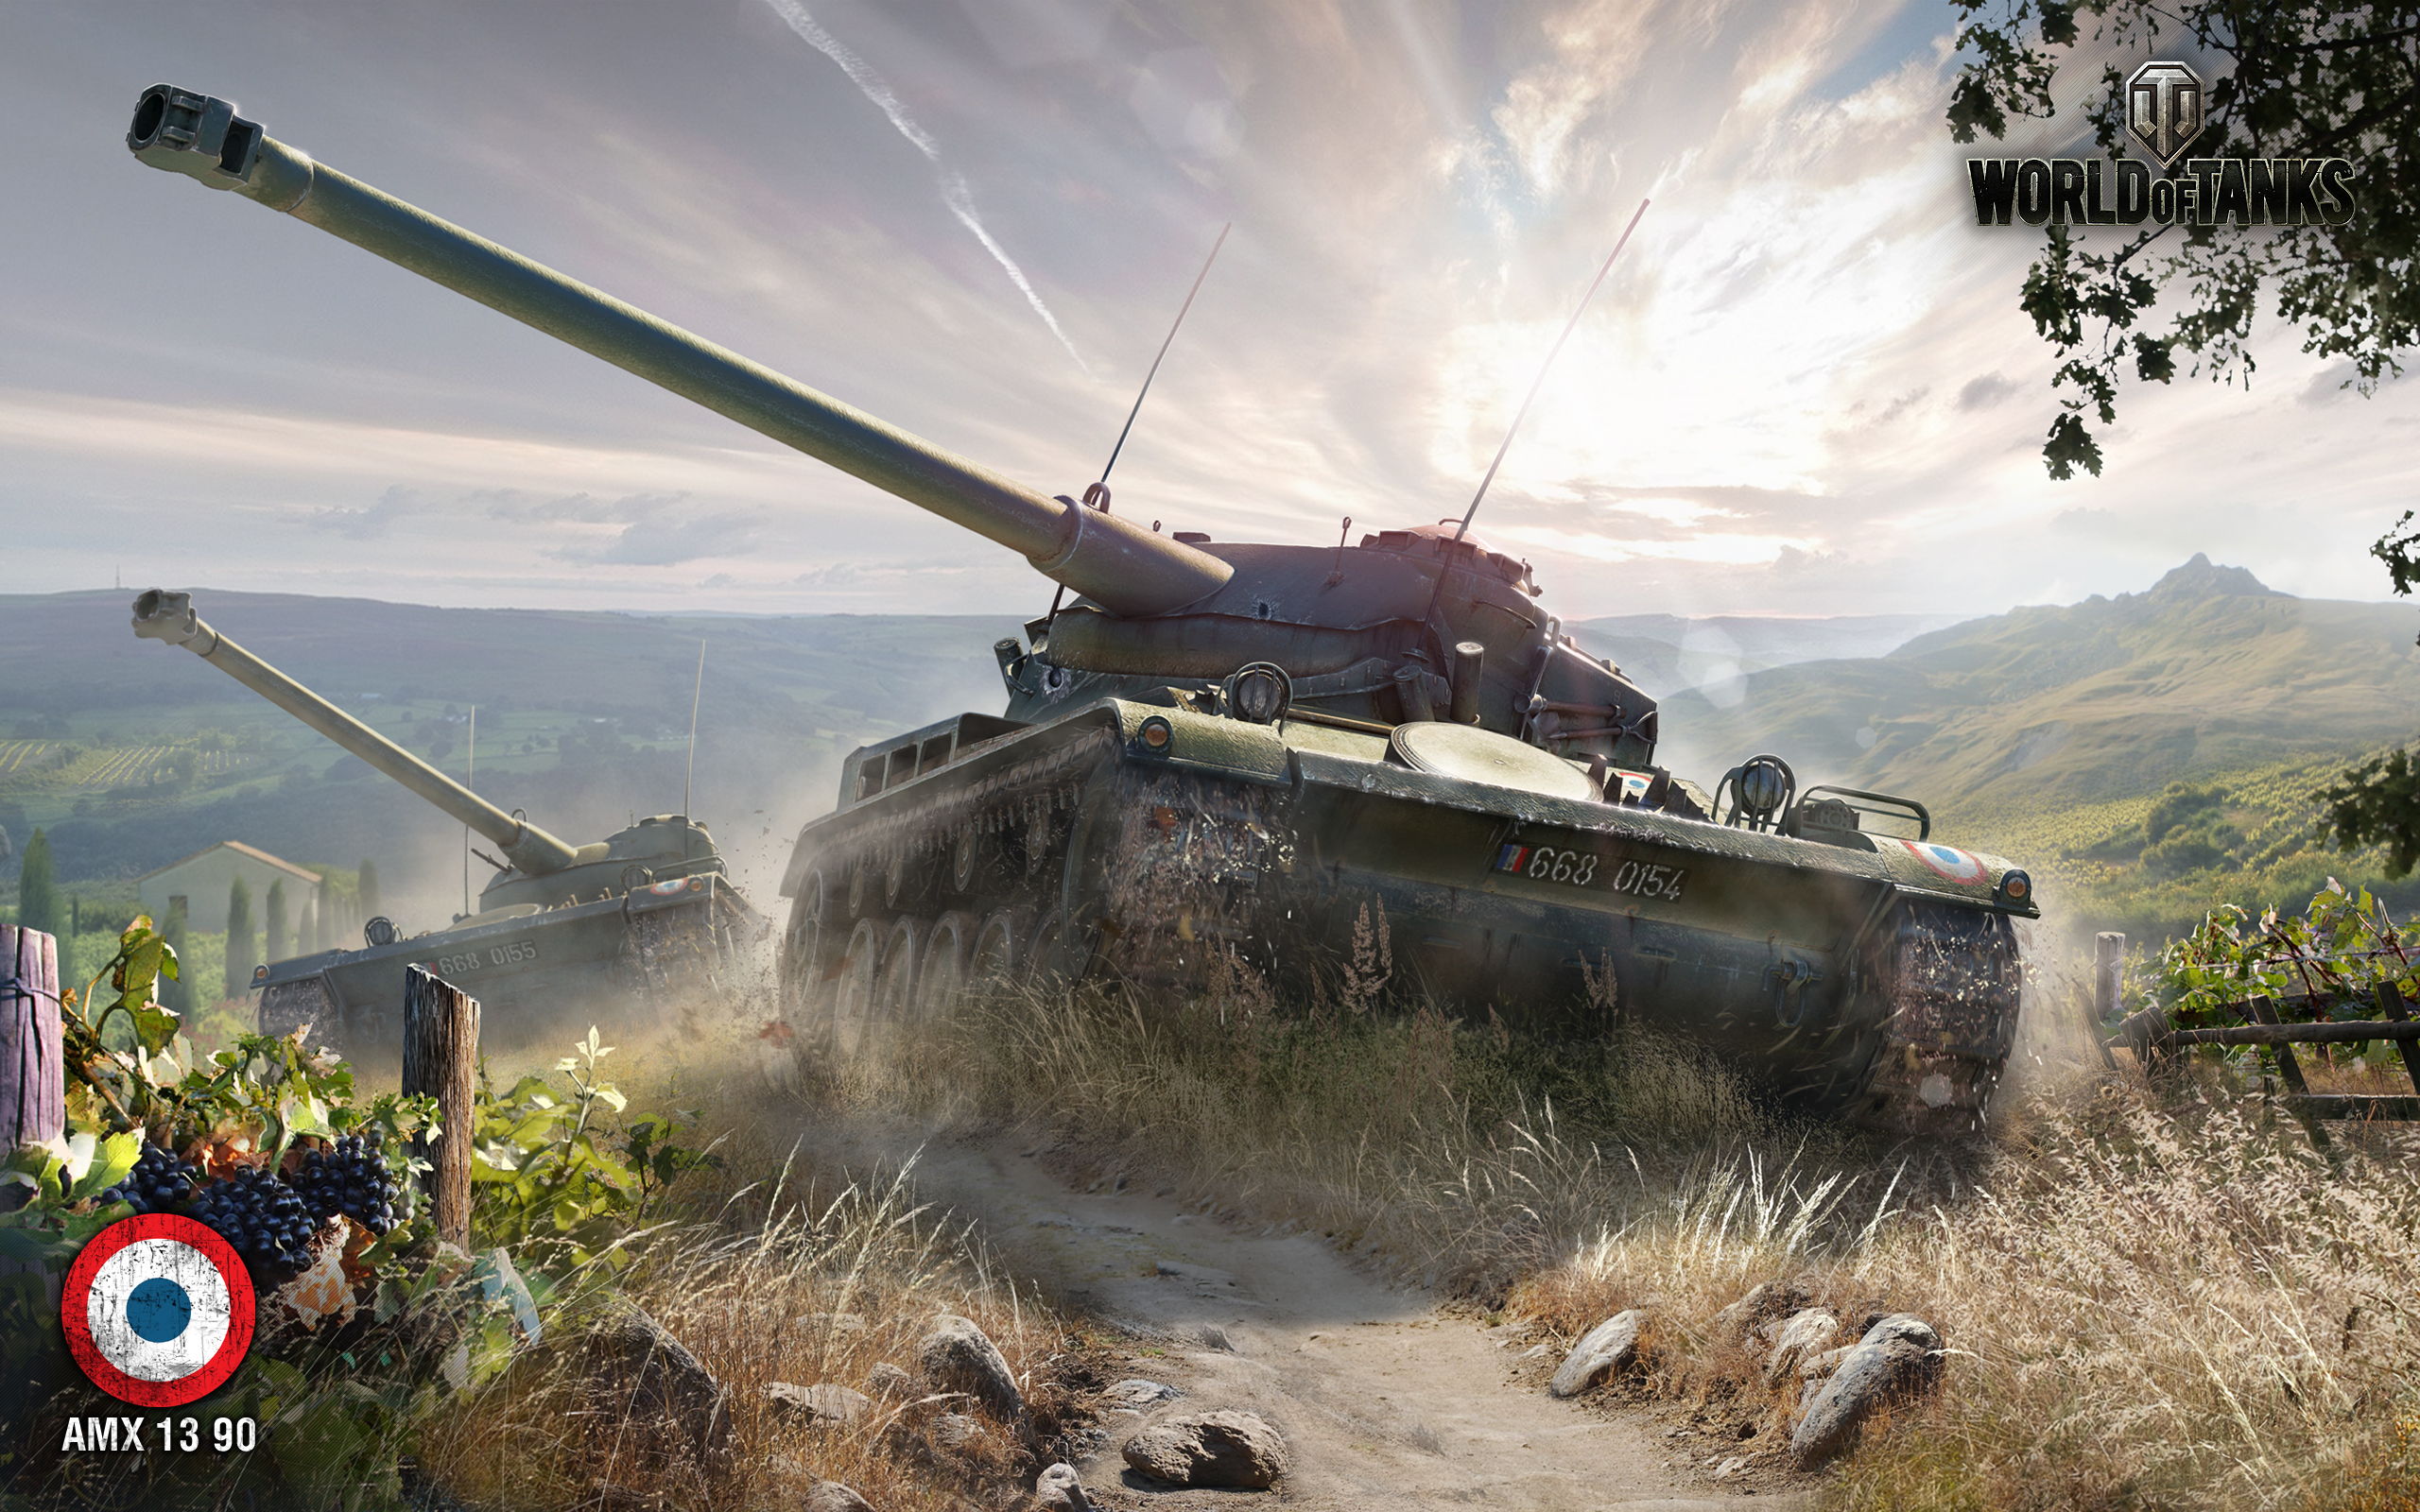 AMX 13 90 World of Tanks 806.15 Kb